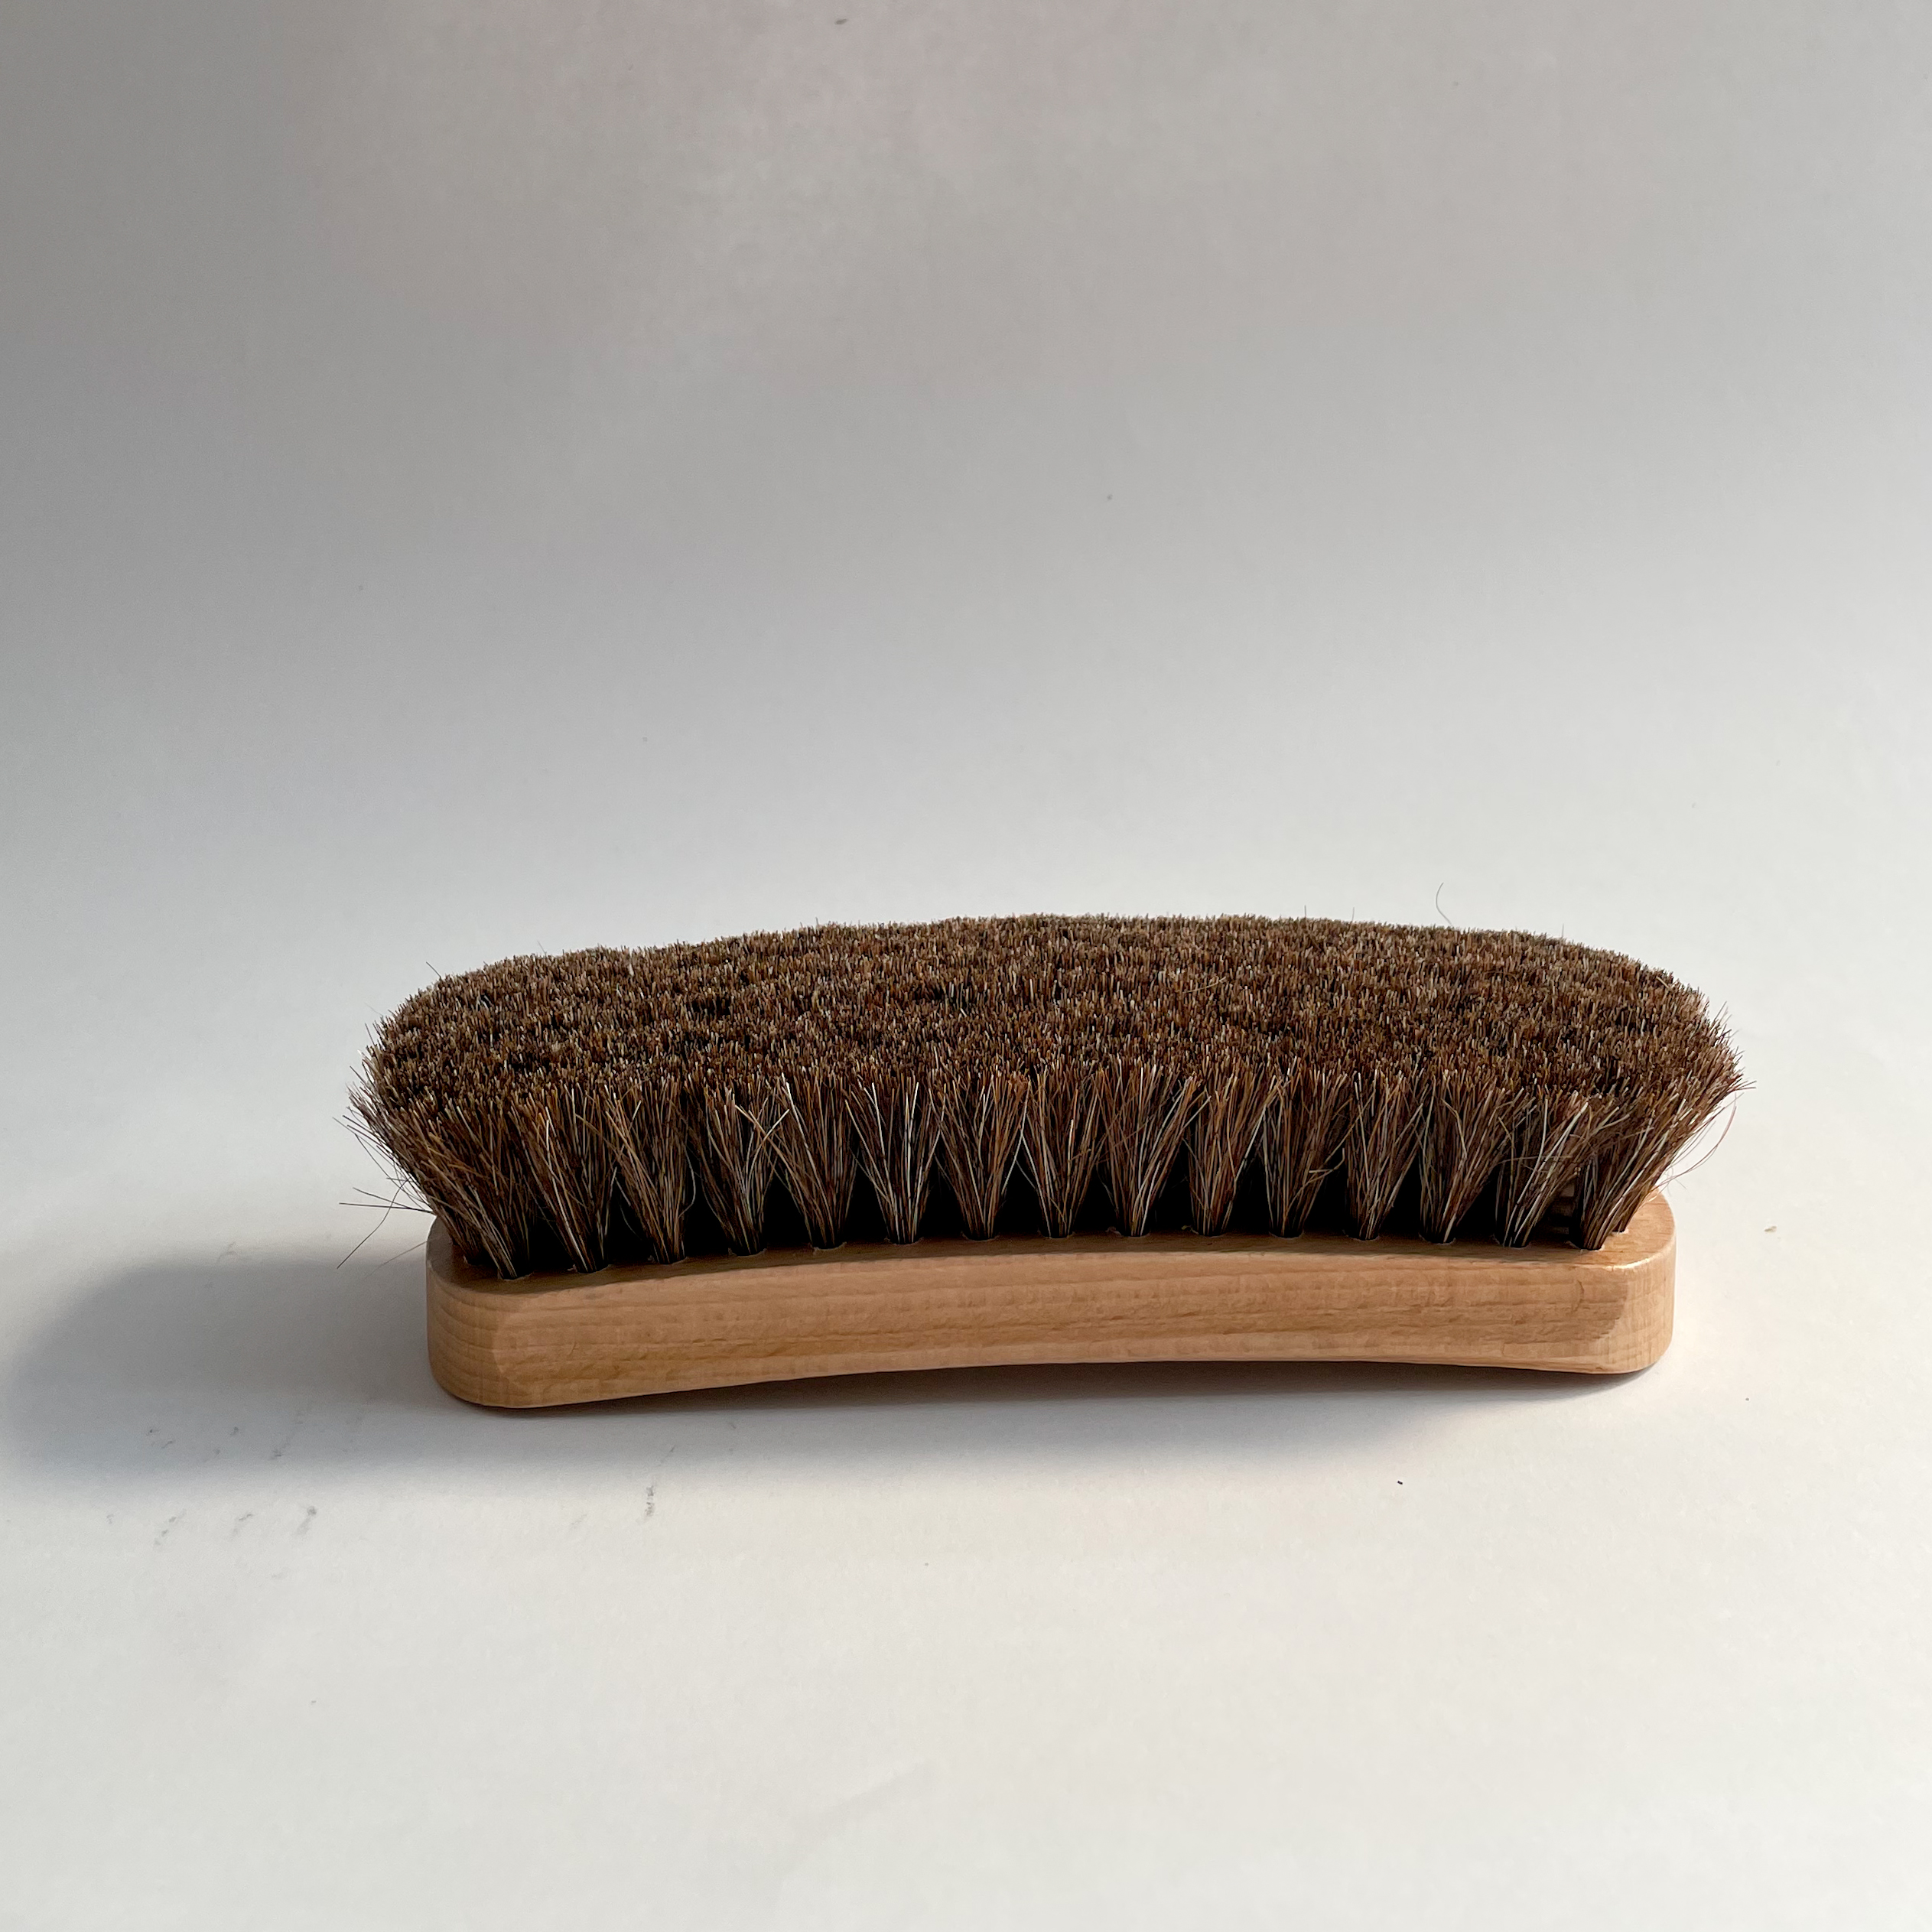 A single large buffing brush with it's bristles facing upwards